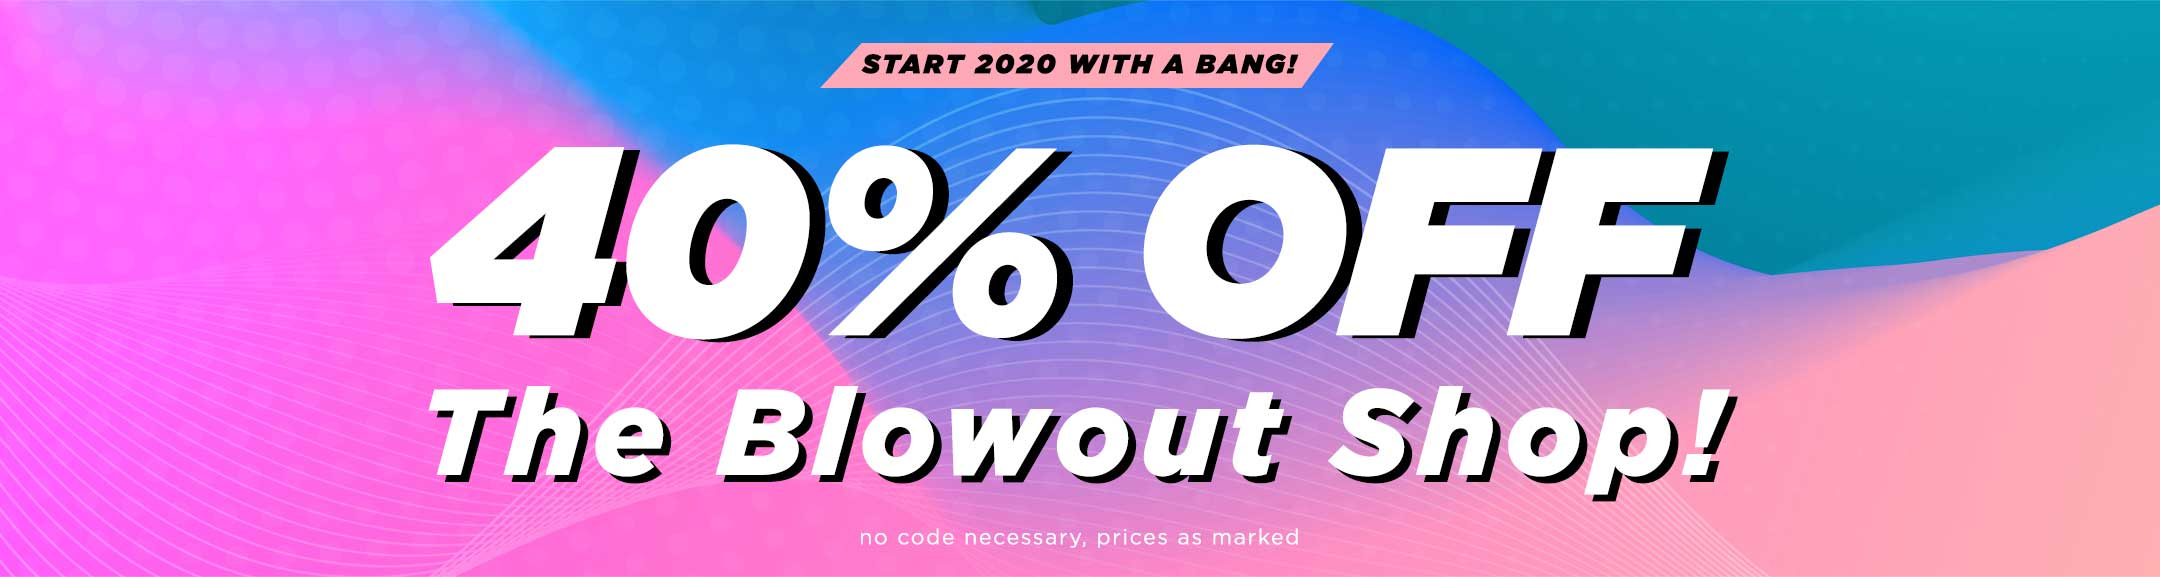 40% Off Blowout Shop